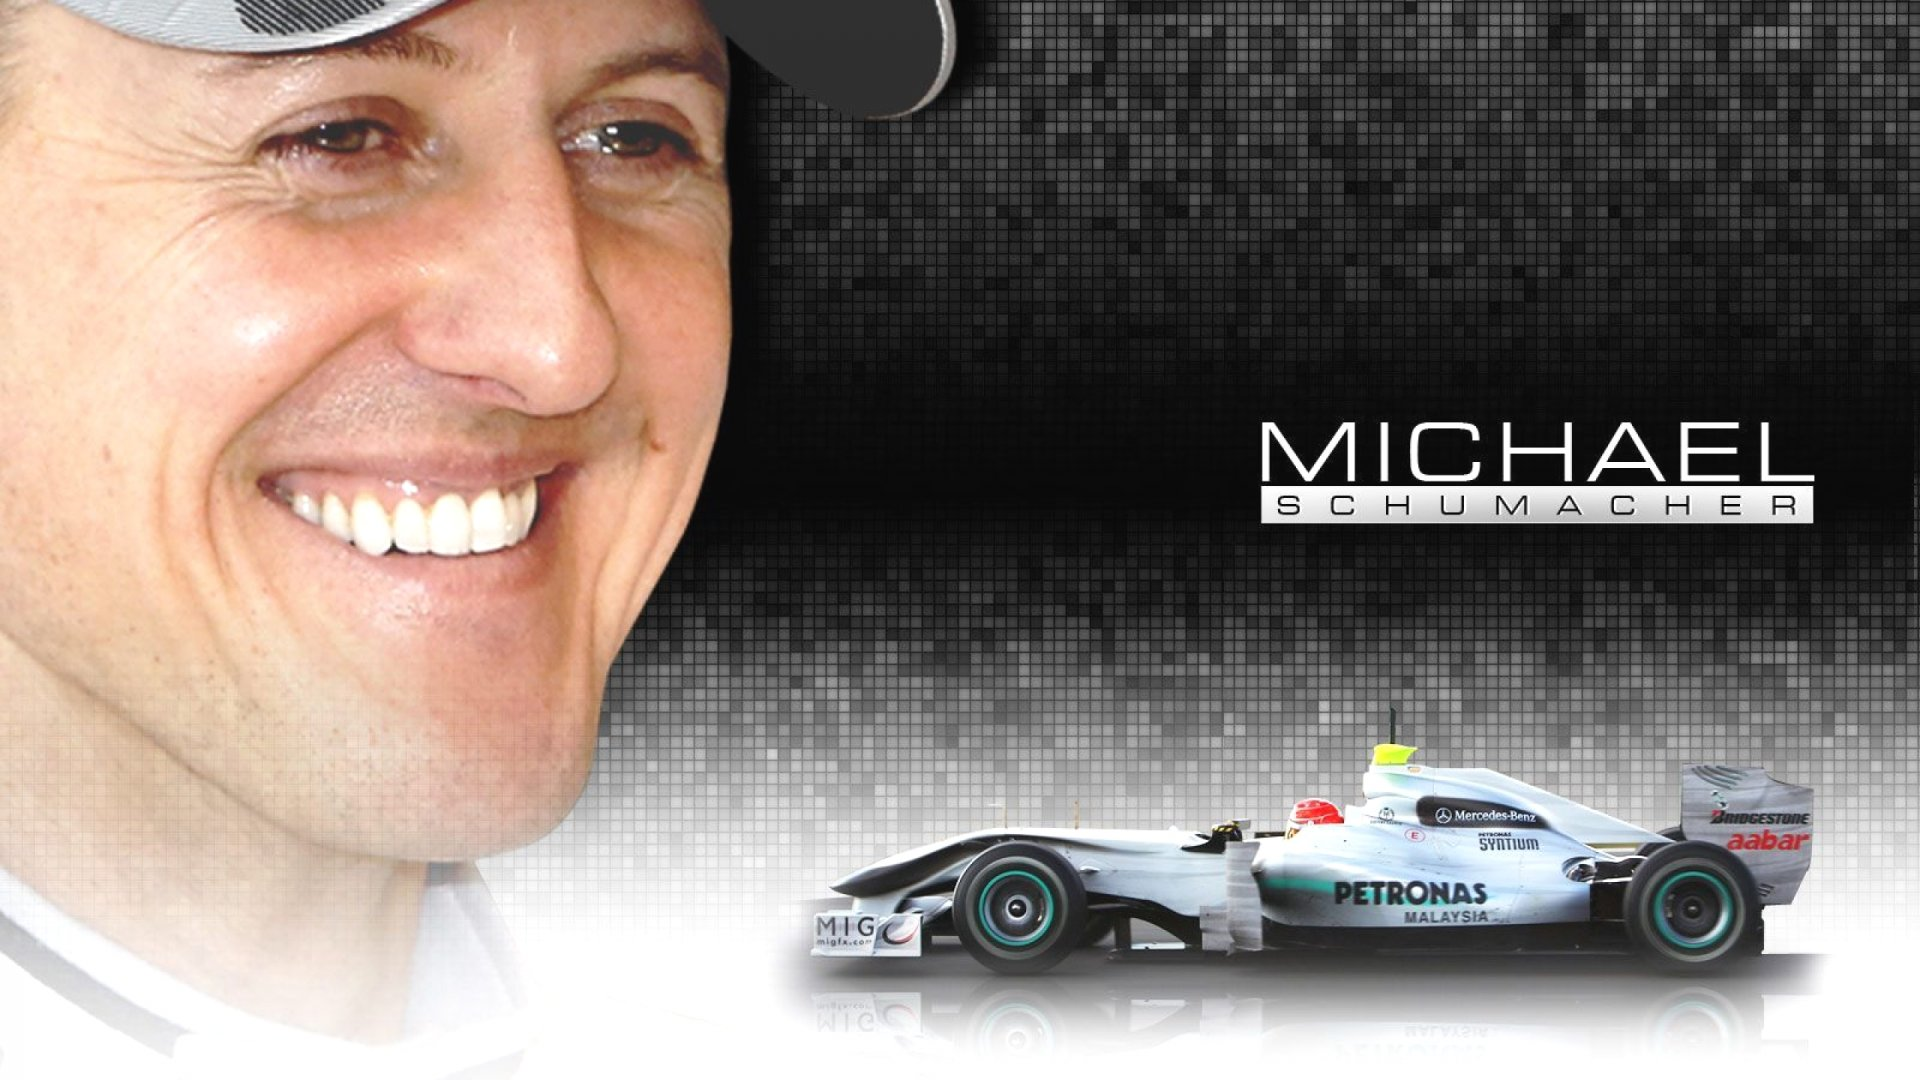 Michael Schumacher Racing Image